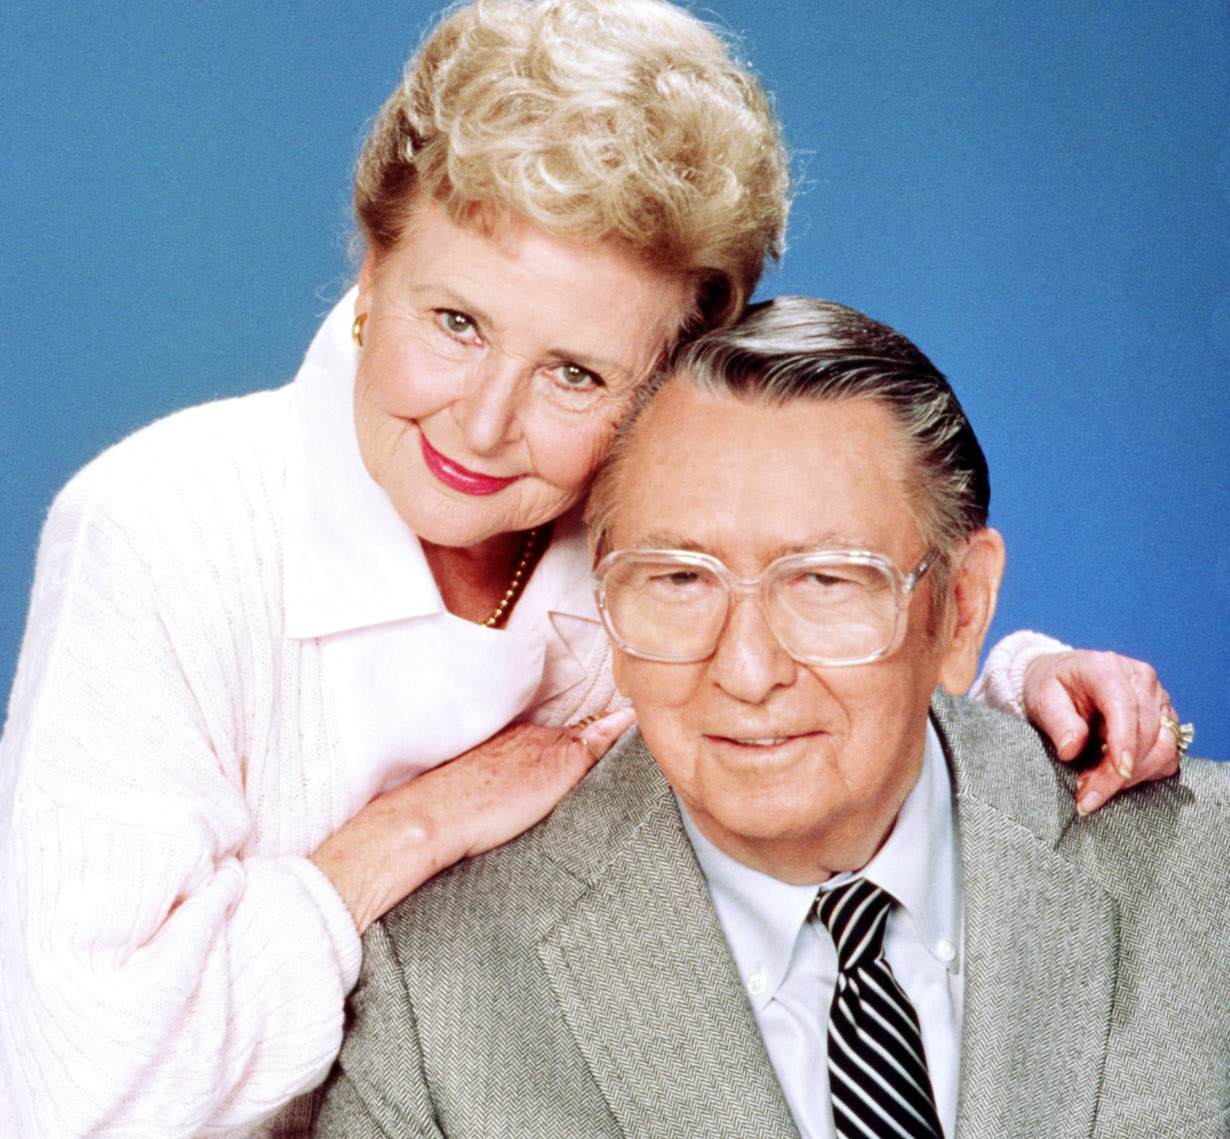 DAYS OF OUR LIVES, Frances Reid, Macdonald Carey, tom alice gallery